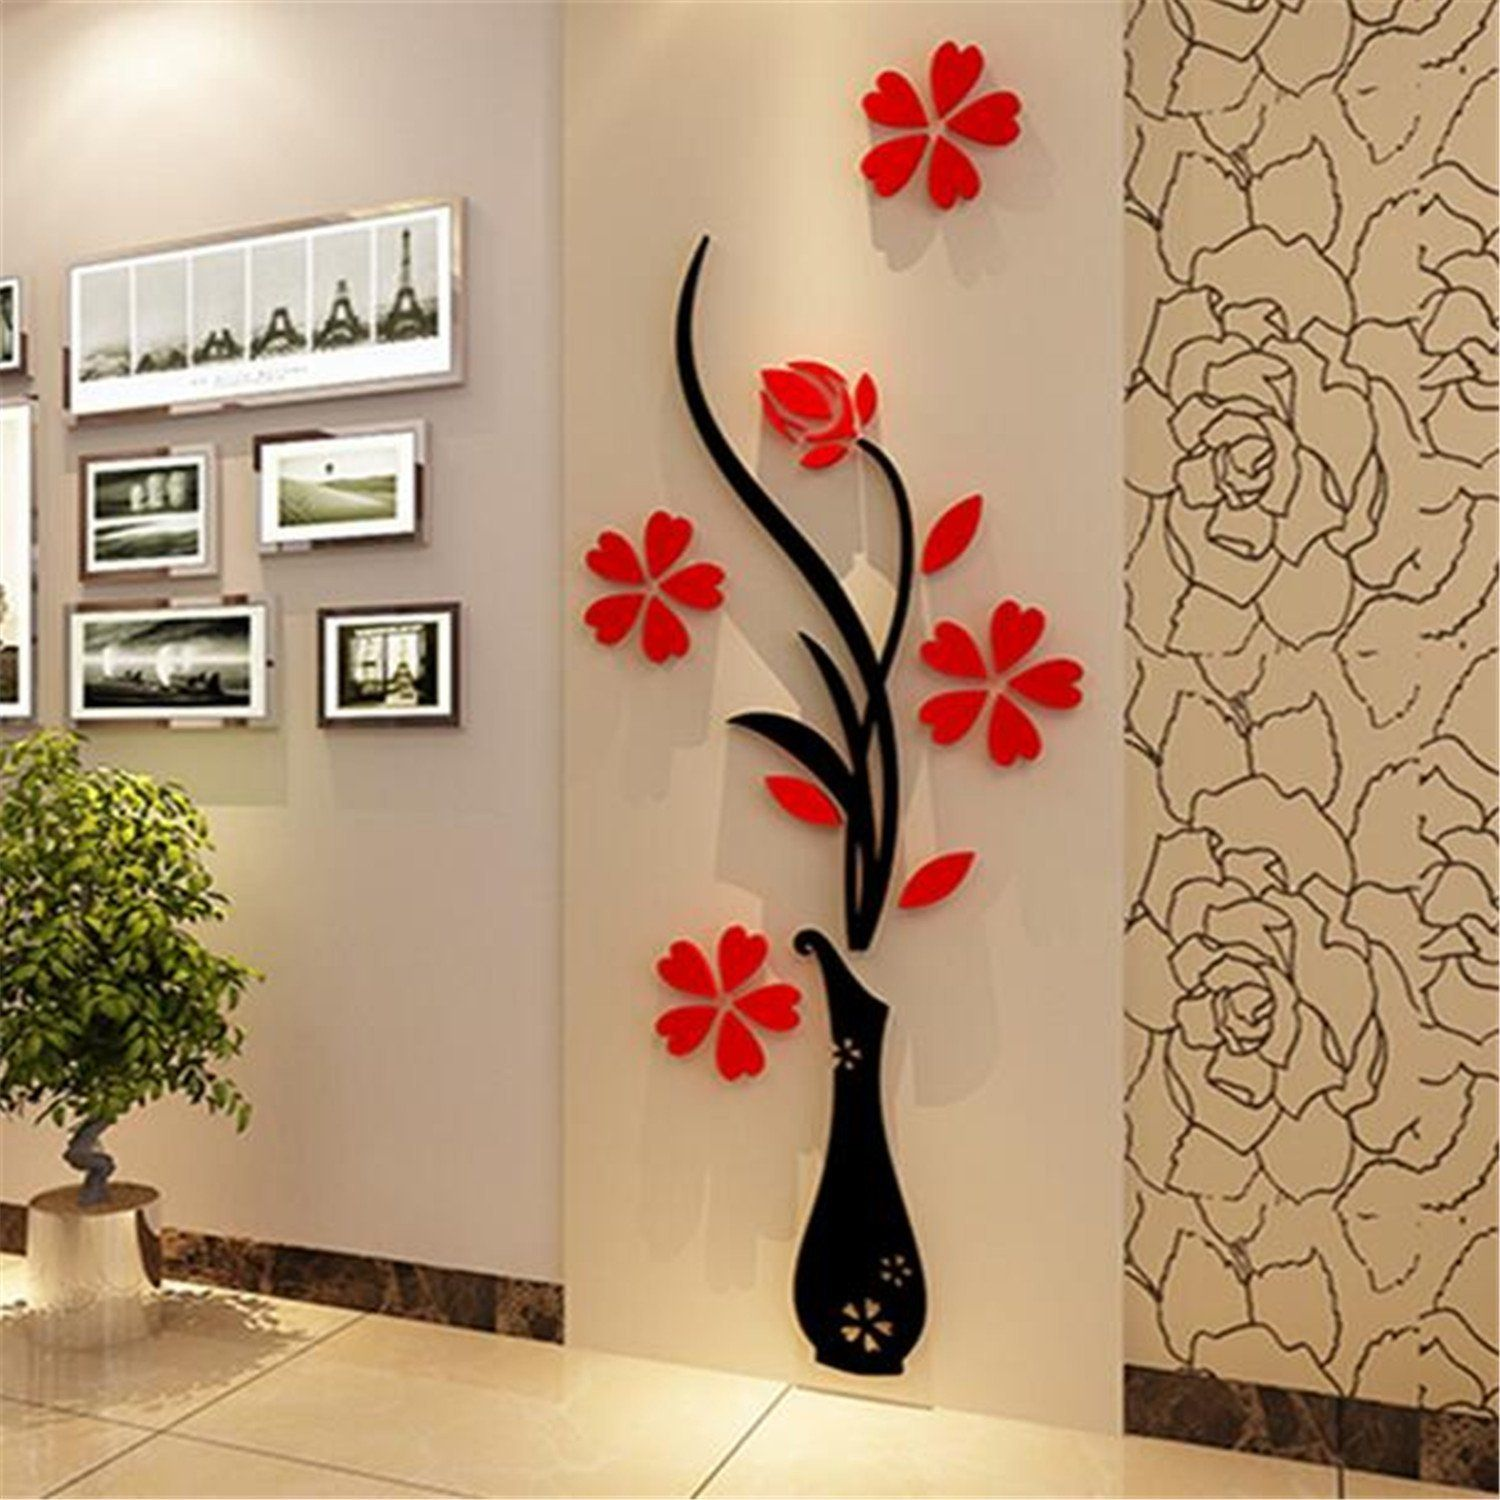 Ceramic Flower Wall Decor home accessories 3d wall decoration wall hangings creative ceramic